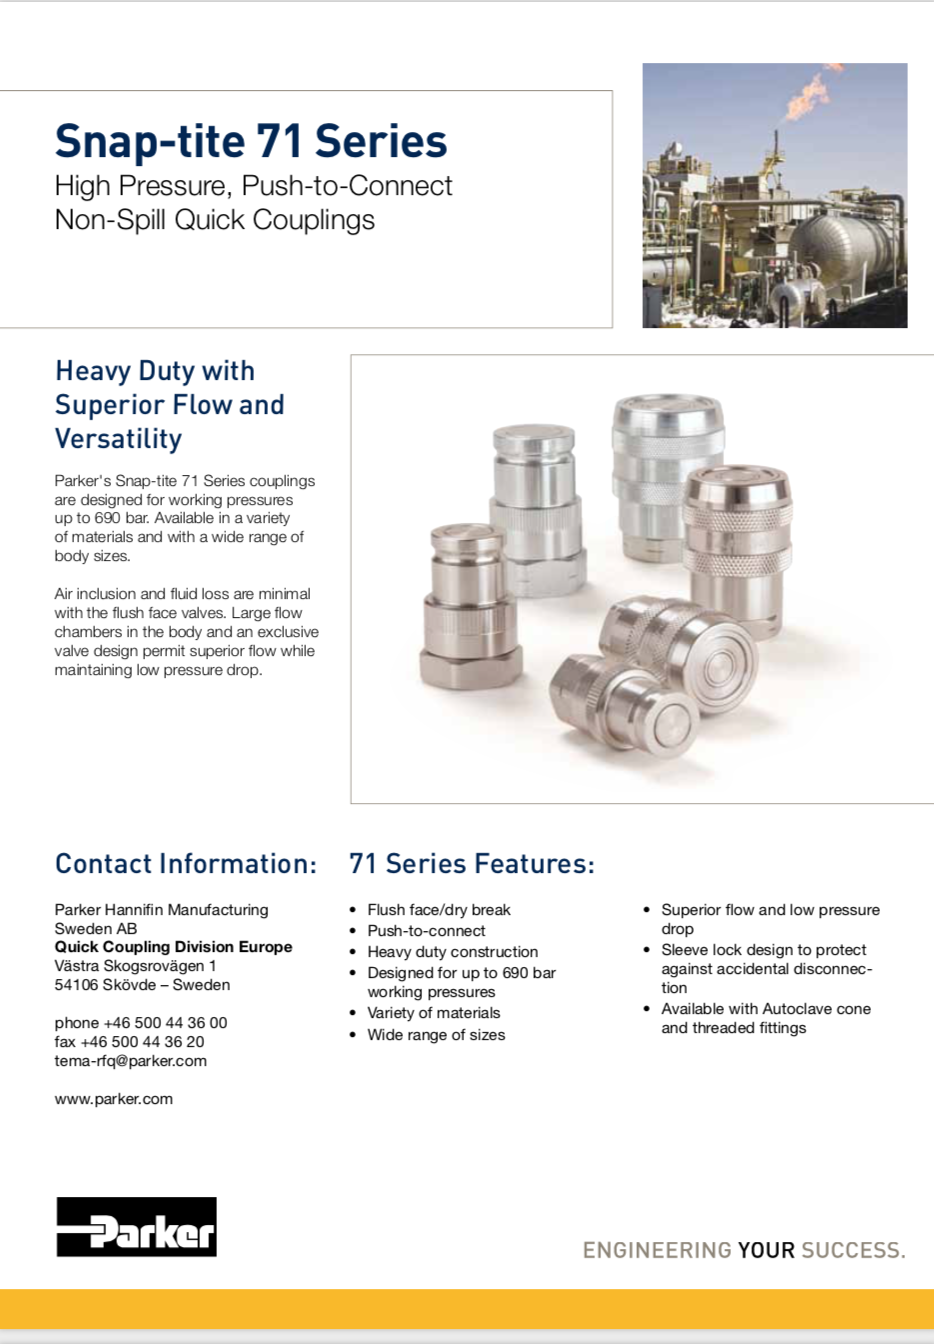 Parker NPT Instrument Pipe Fittings